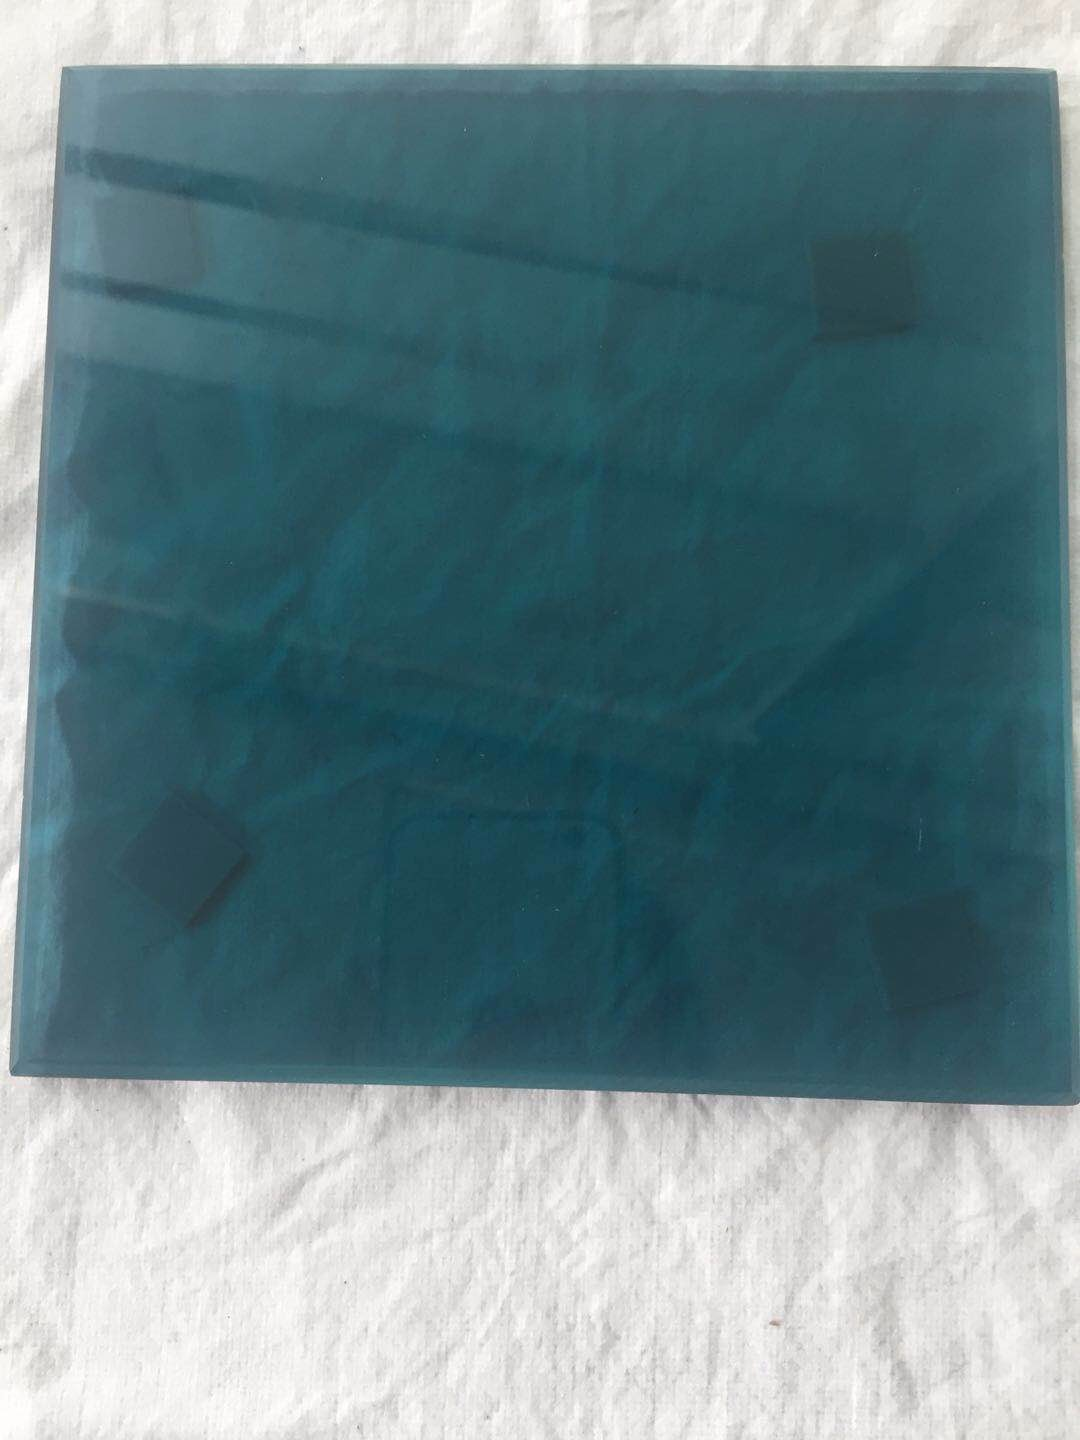 Light Blue Temepered Glass Manufacturers, Light Blue Temepered Glass Factory, Light Blue Temepered Glass